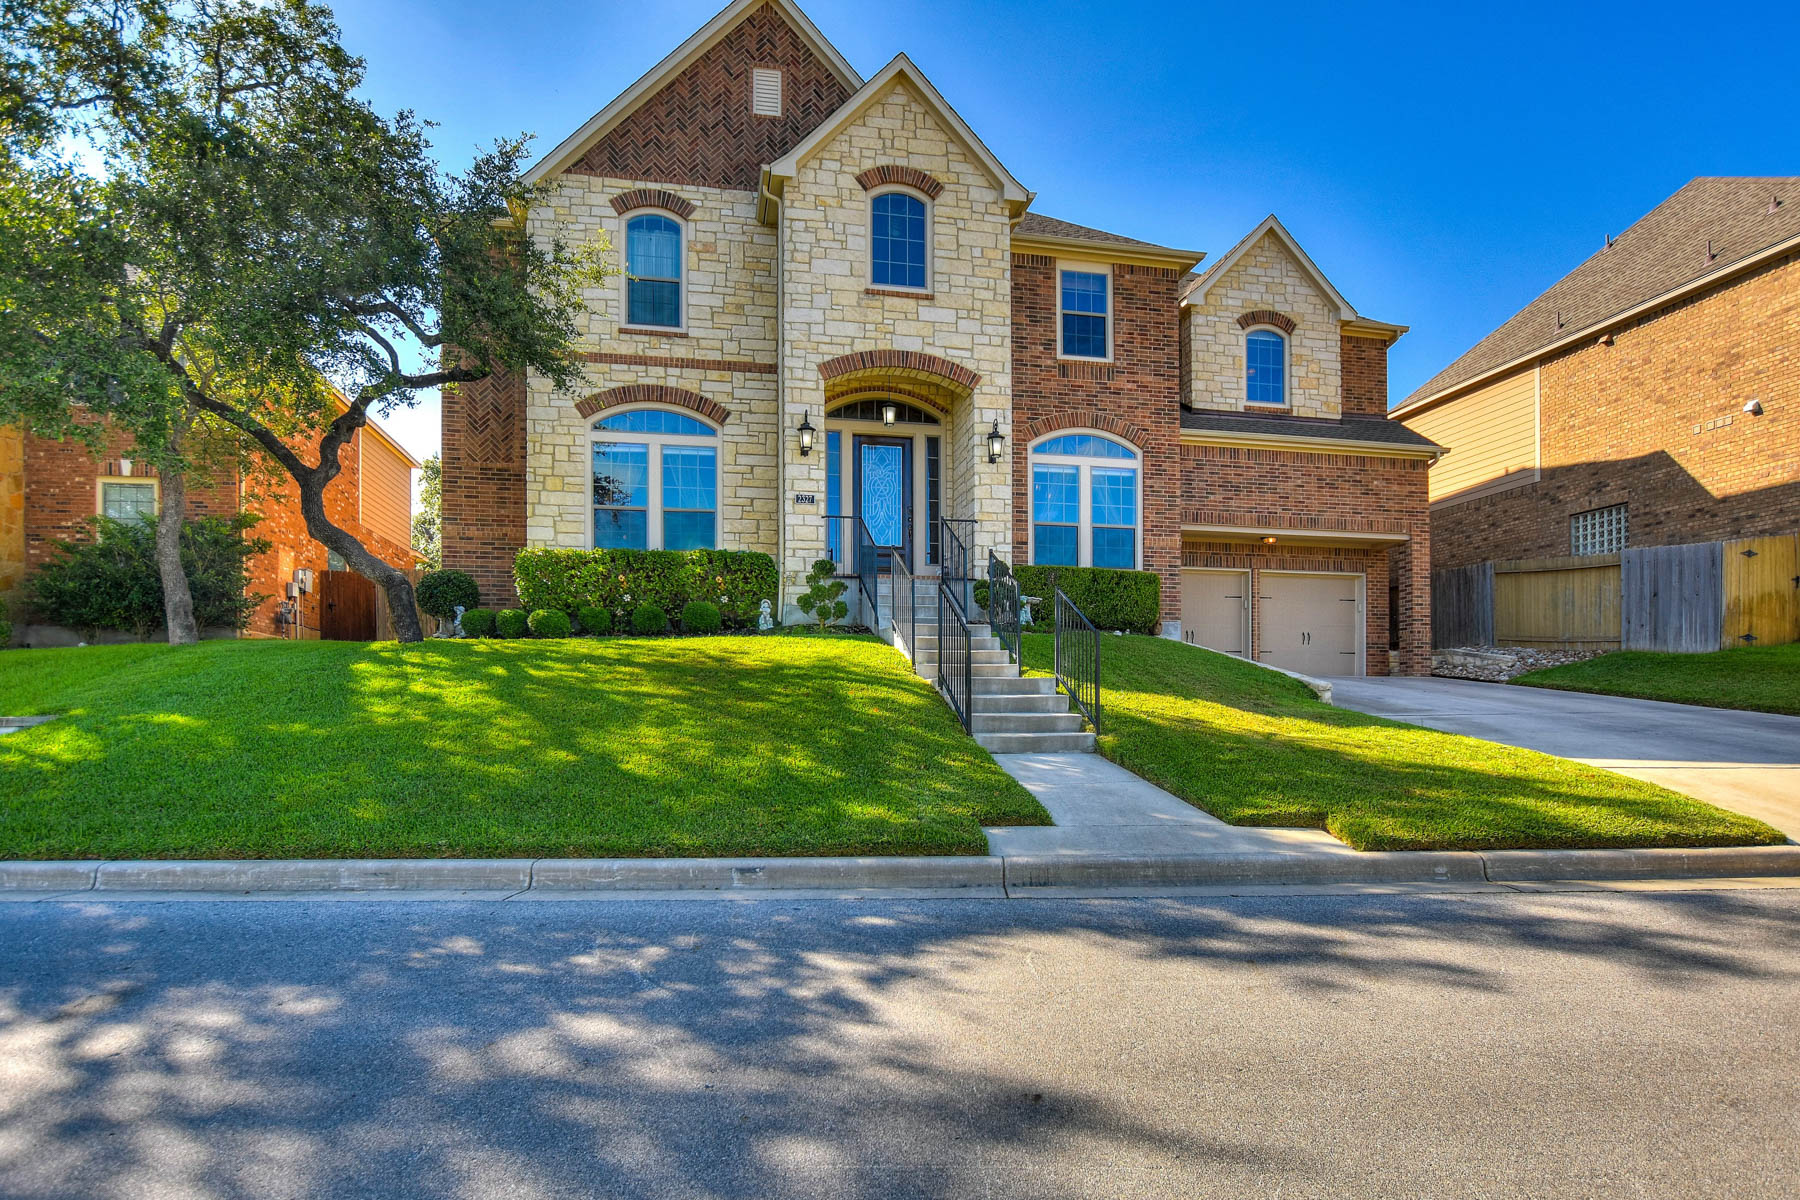 Vivienda unifamiliar por un Venta en Amazing Home Loaded with Upgrades in New Braunfels 2327 Oak Run Pkwy New Braunfels, Texas 78132 Estados Unidos